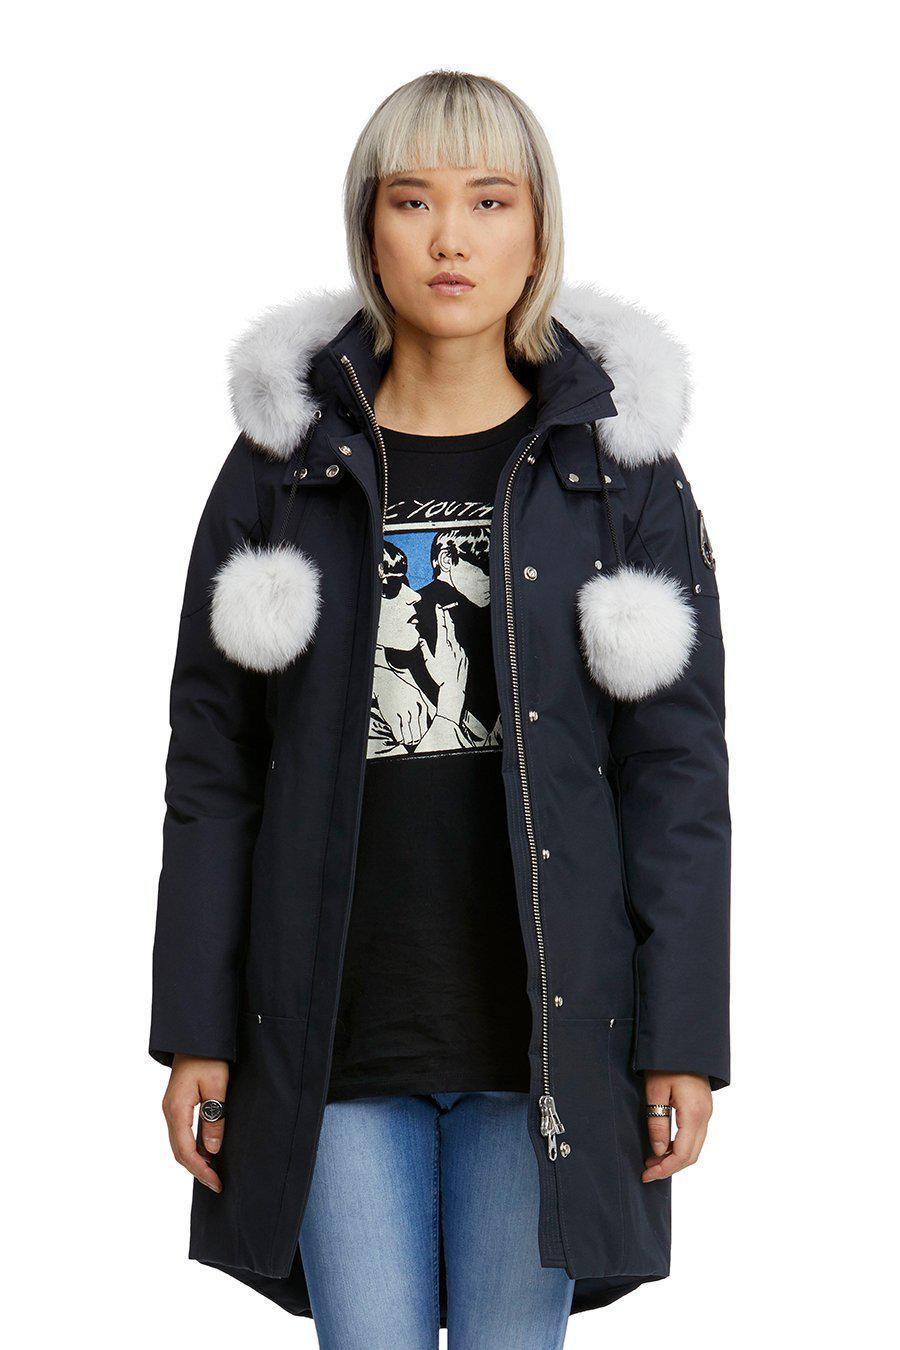 STIRLING PARKA NAVY-PARKA-MOOSE KNUCKLES-S-Janan Boutique